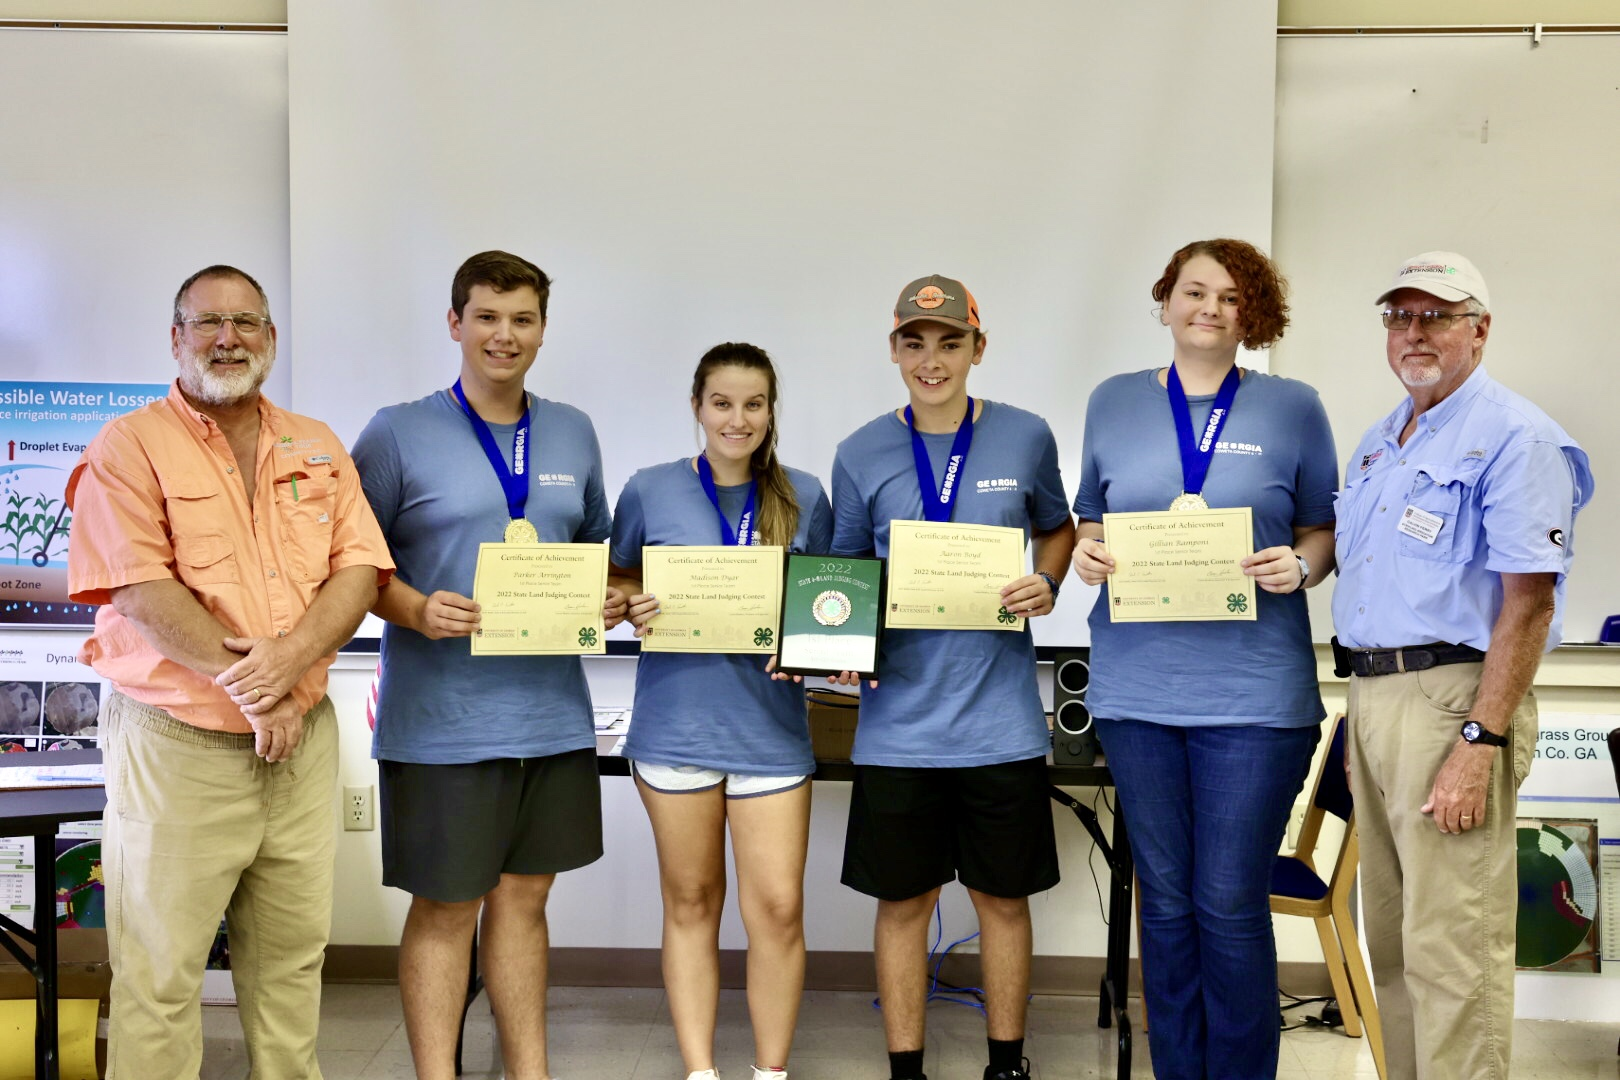 UGA Soil Scientist and judge Glen Harris congratulates the Coweta County Senior 4-H land-judging championship team, including (left to right) Parker Arrington, Madison Dyar, Aaron Boyd and Gillian Ramponi, with Stripling Research Park Superintendent Calvin Perry.